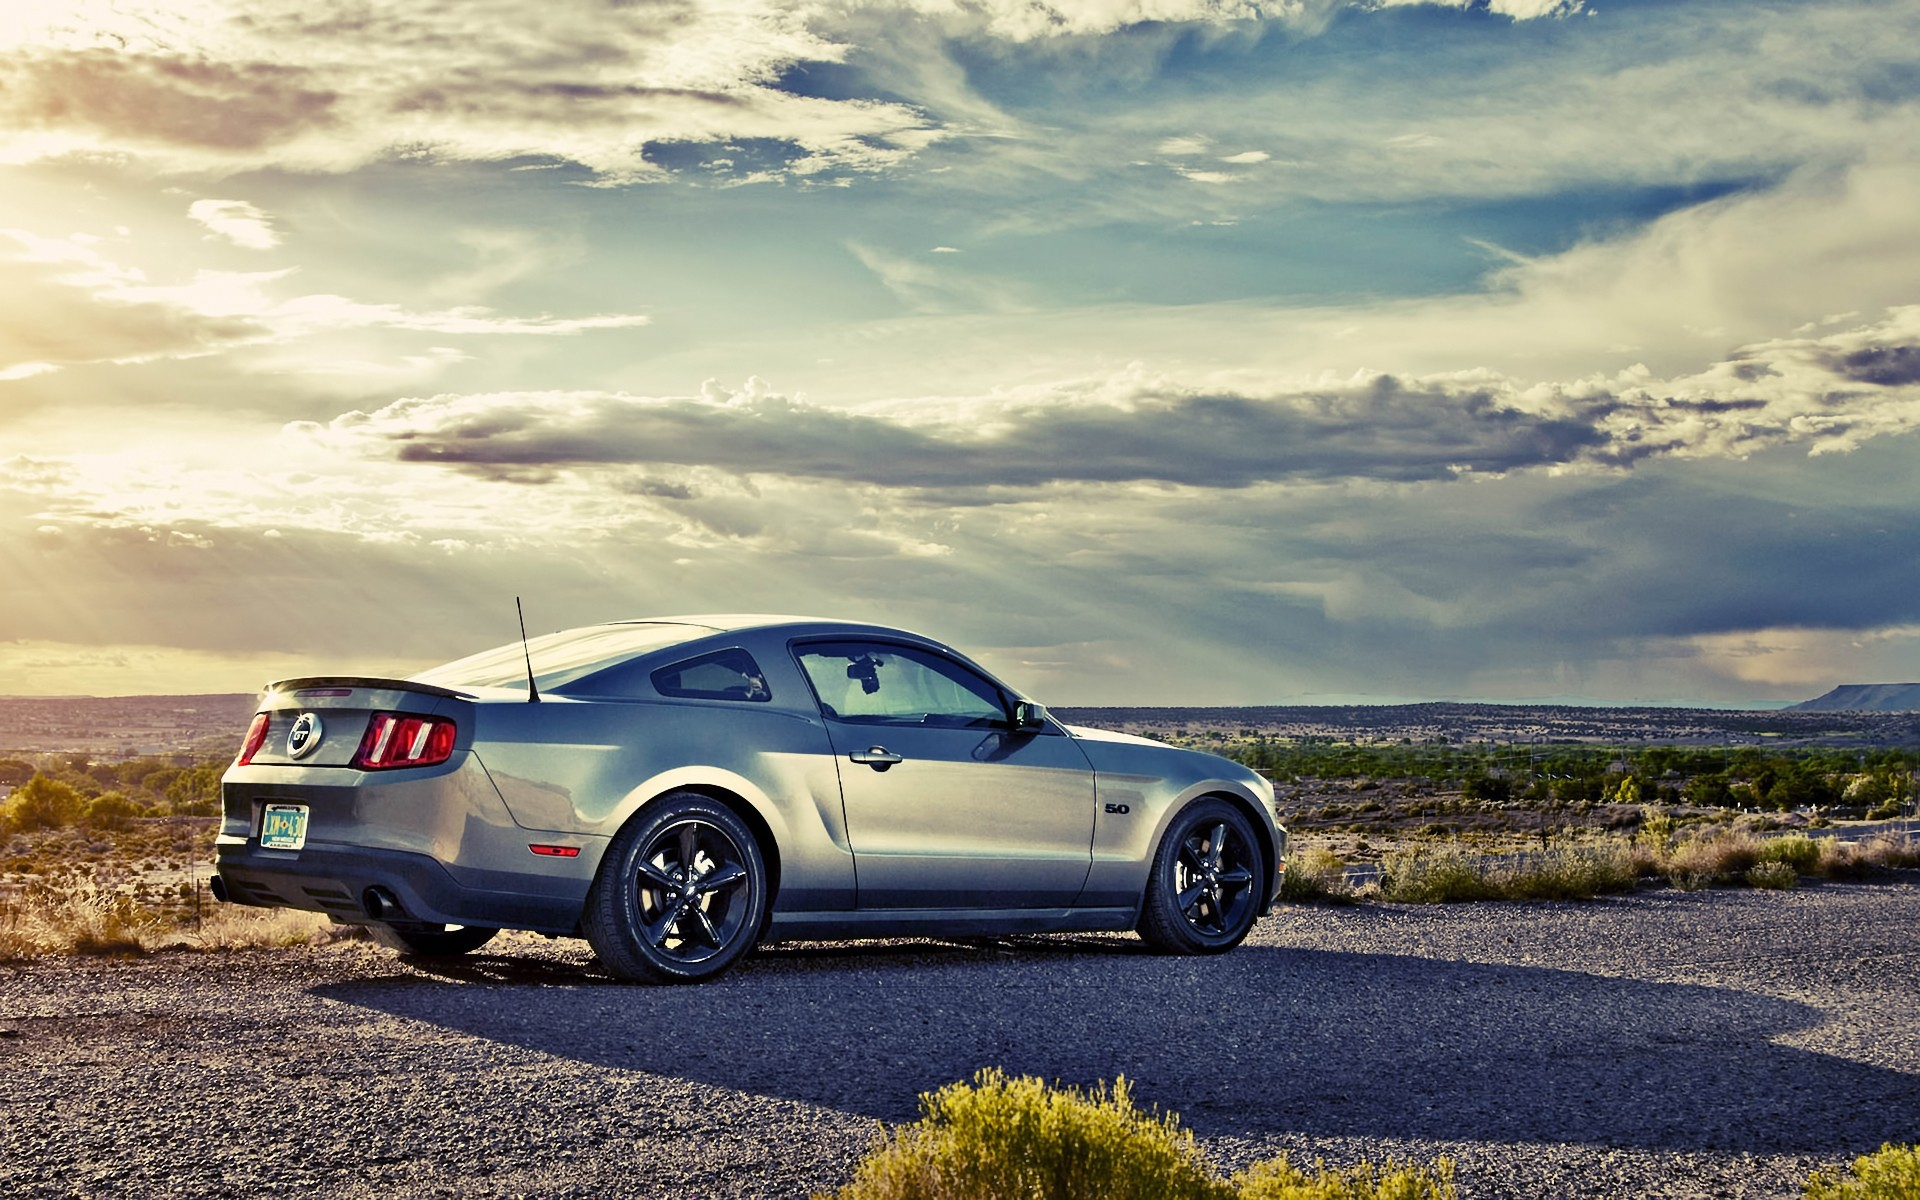 cars, clouds, mustang